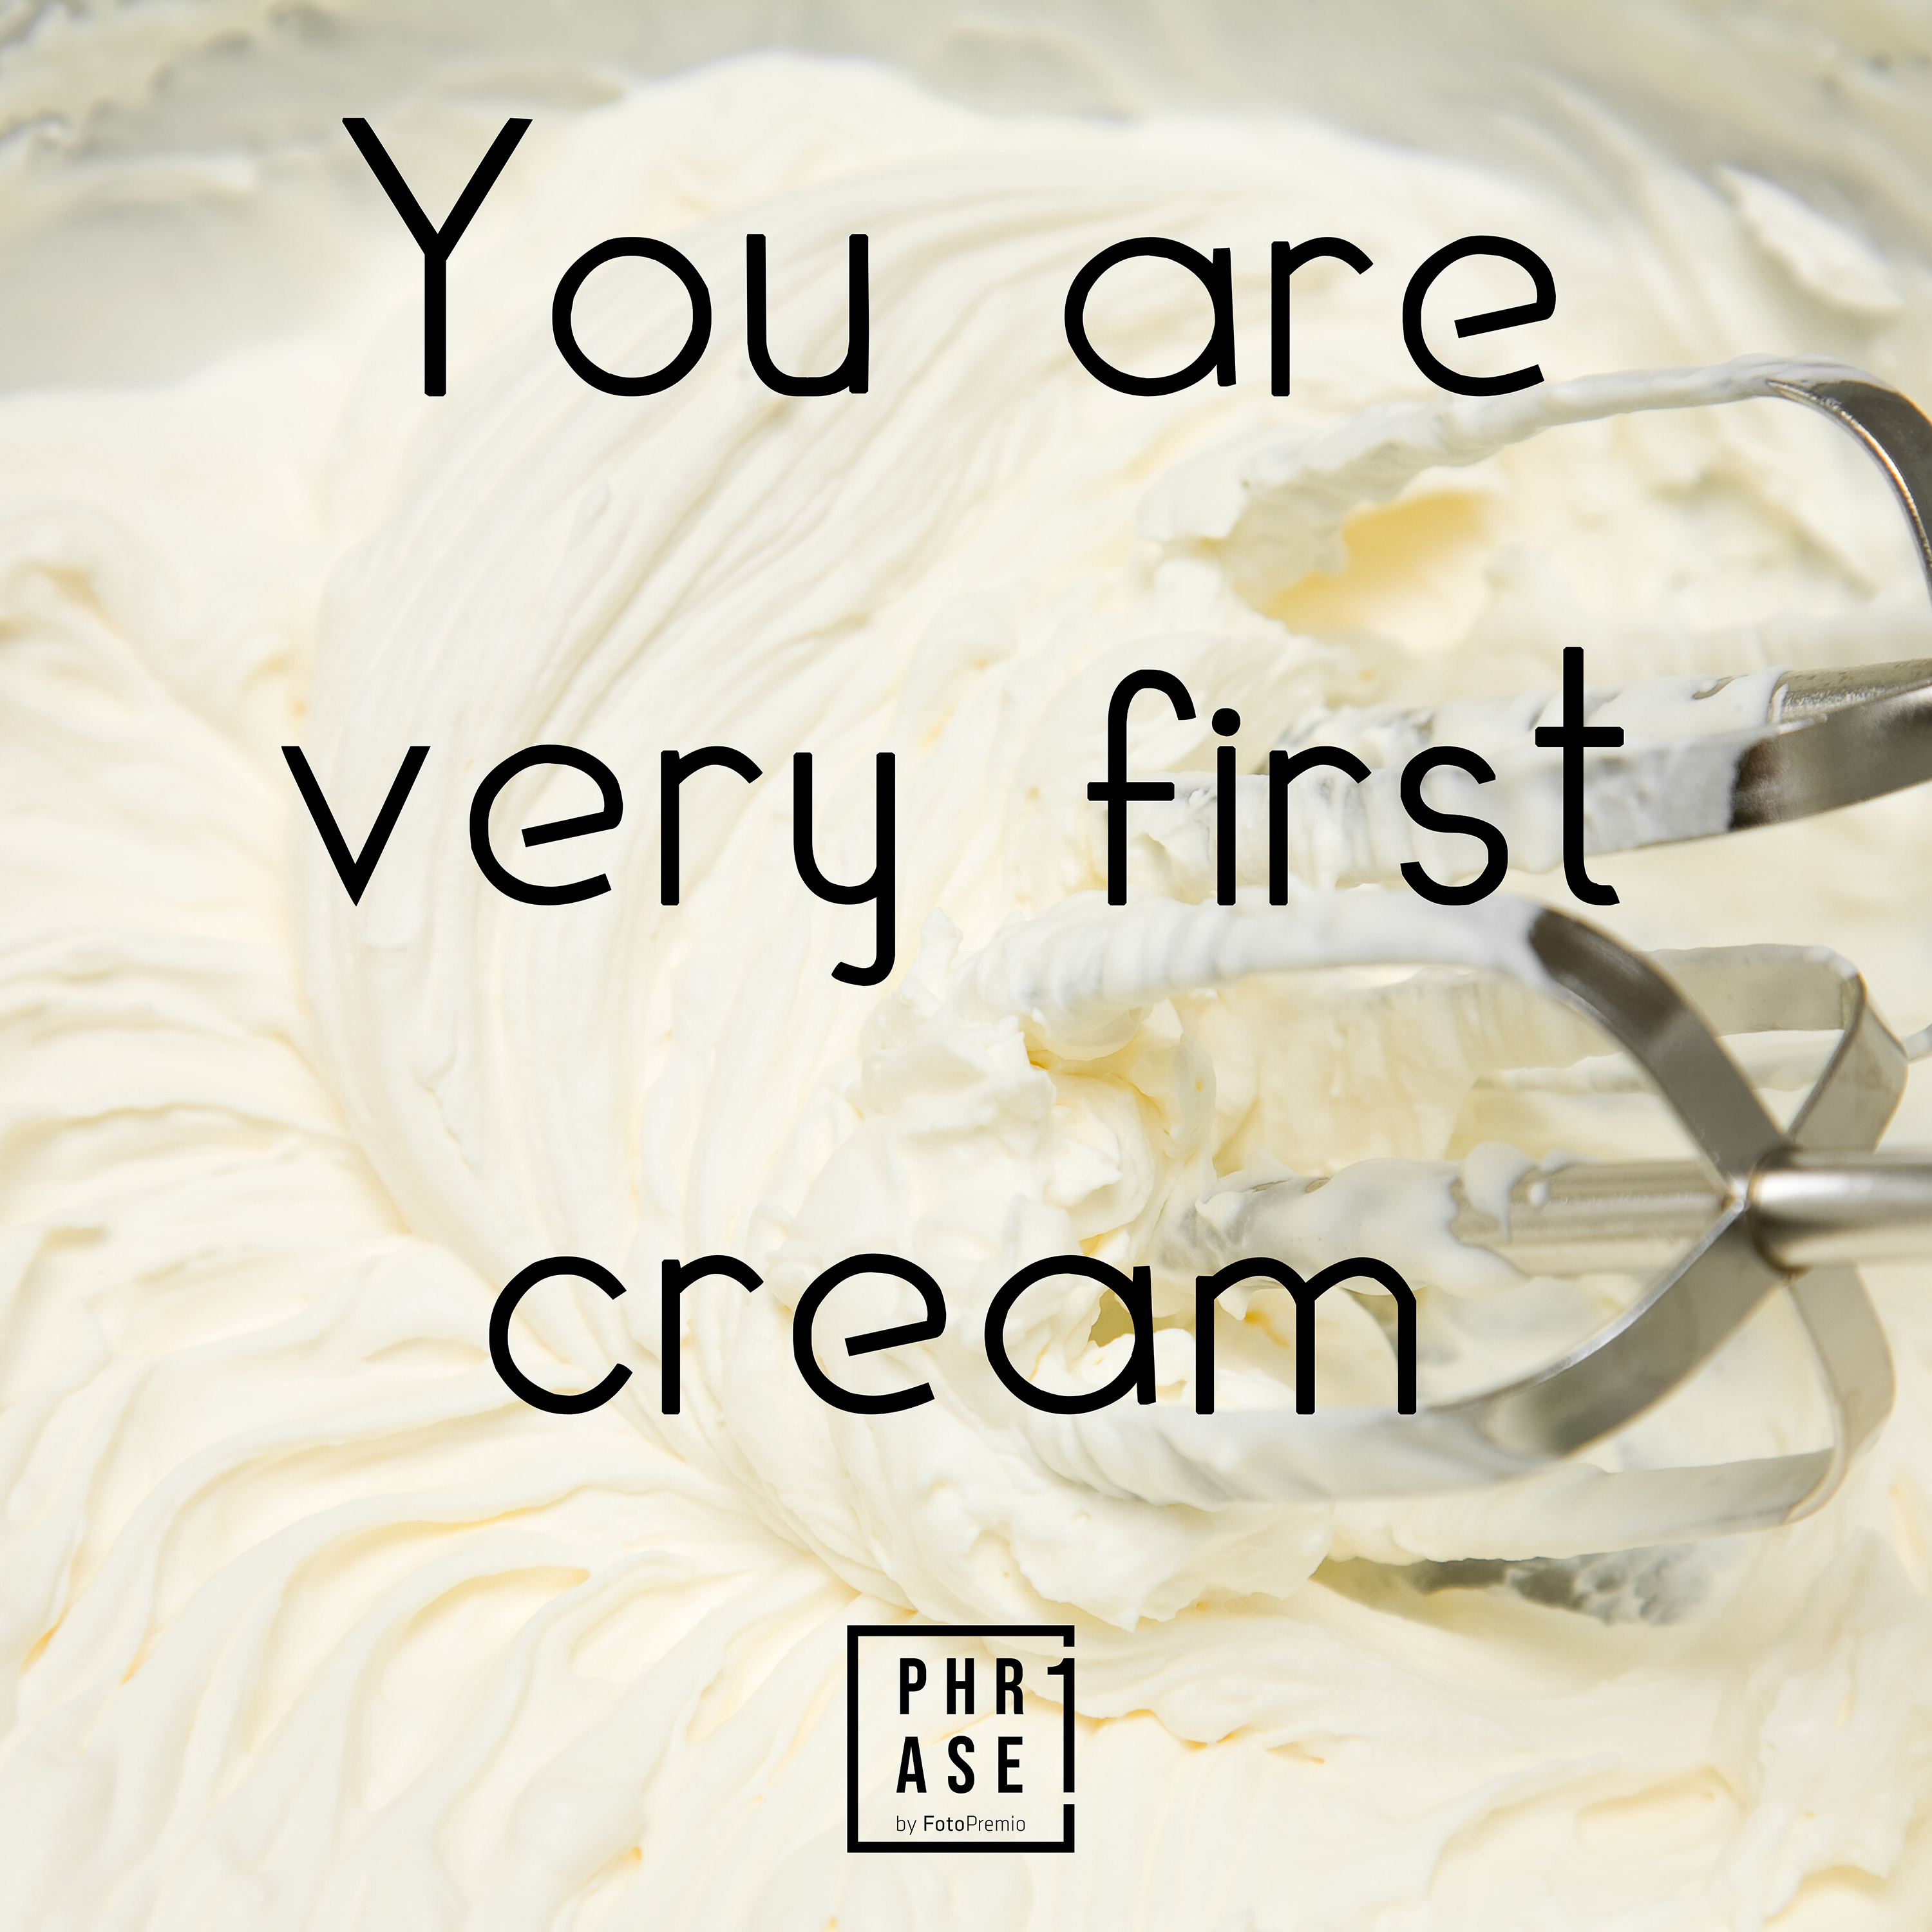 You are very first cream